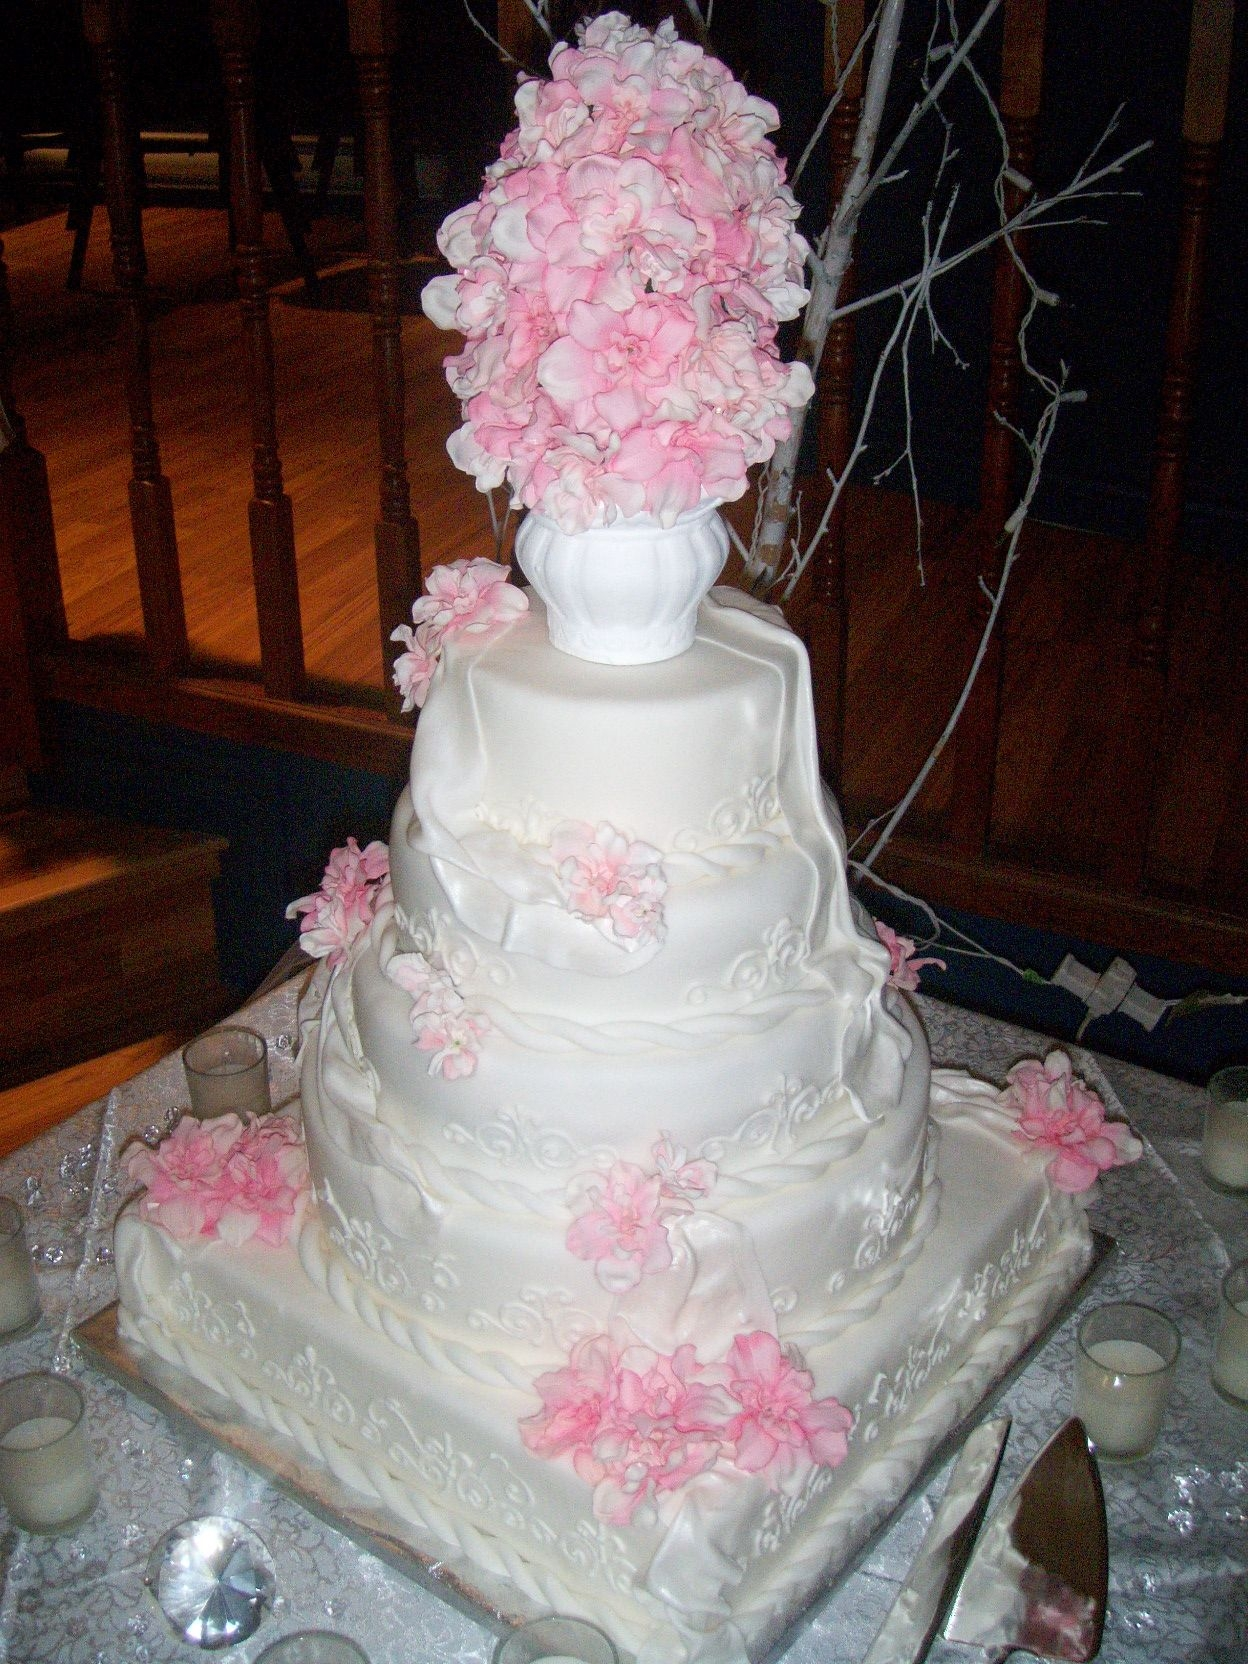 Pink And White Wedding Cake Bride wanted 5 layers, 1 square, 4 round.It came out better then I thought. All she said was that she wanted pink flowers and some piping,...